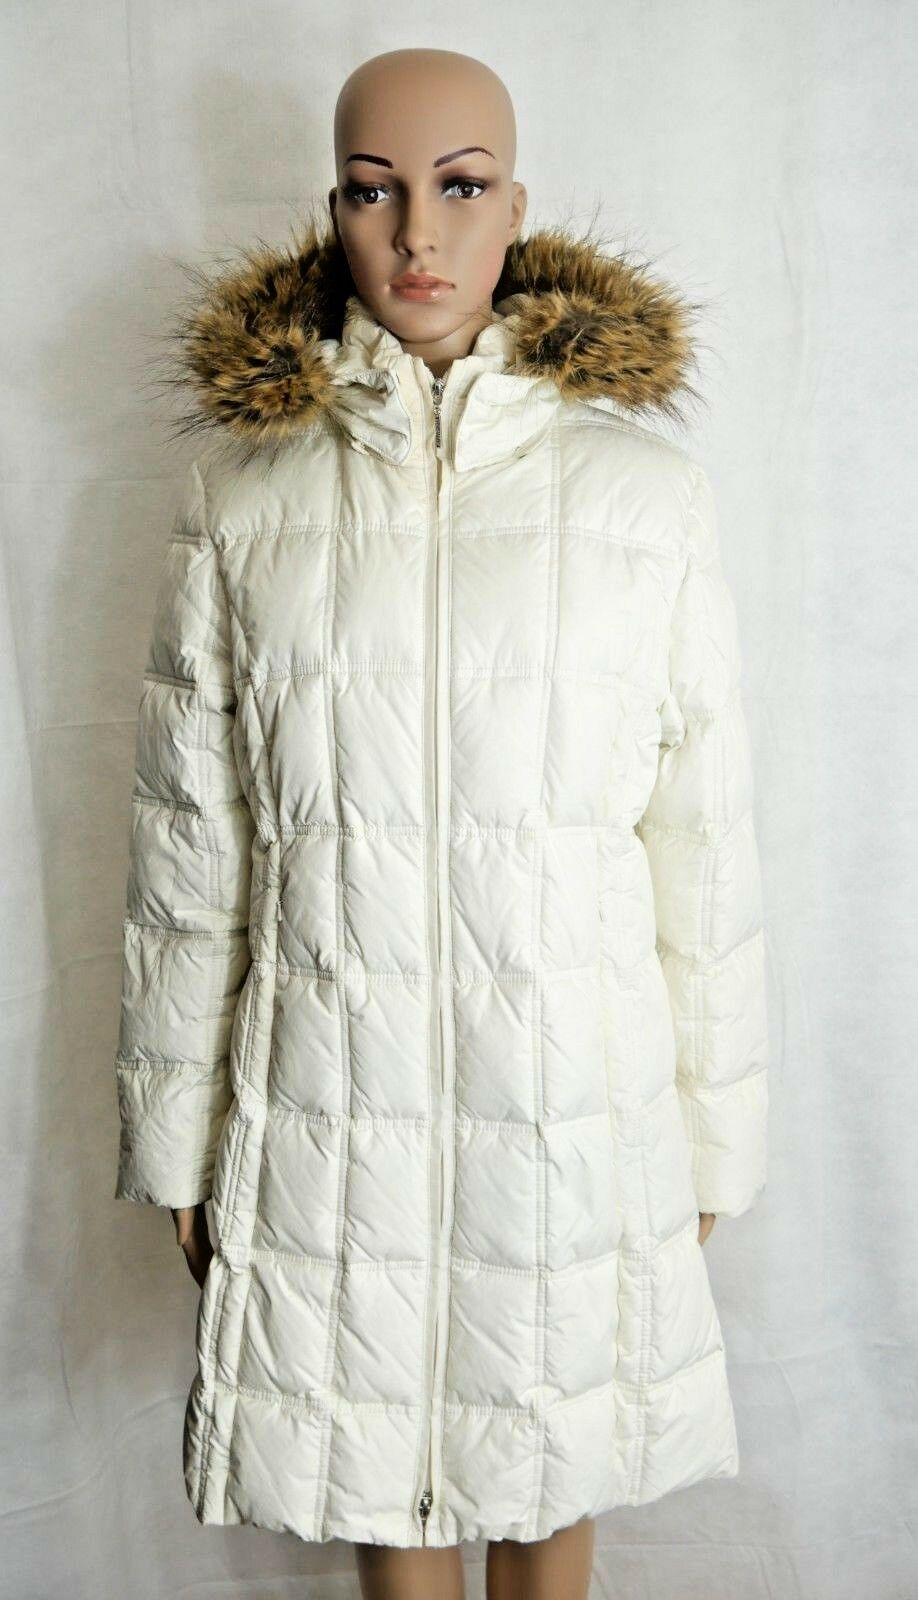 Weatherproof Garment Company Womens White Quilted Puffer Coat Hood Faux Fur Med